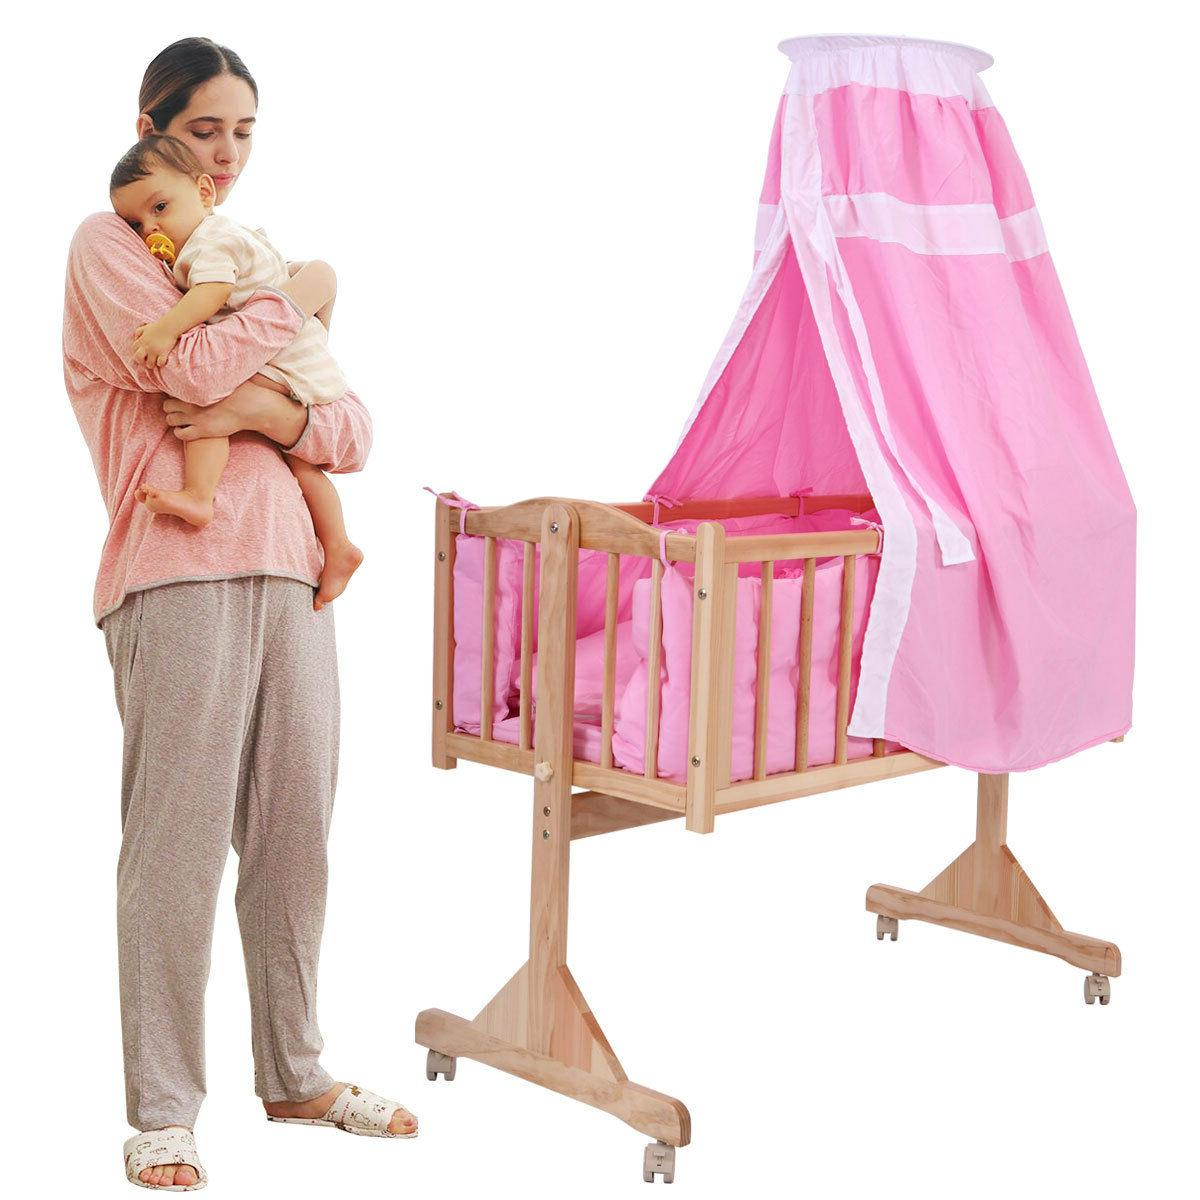 Baby Side Bed Furniture W/Canopy